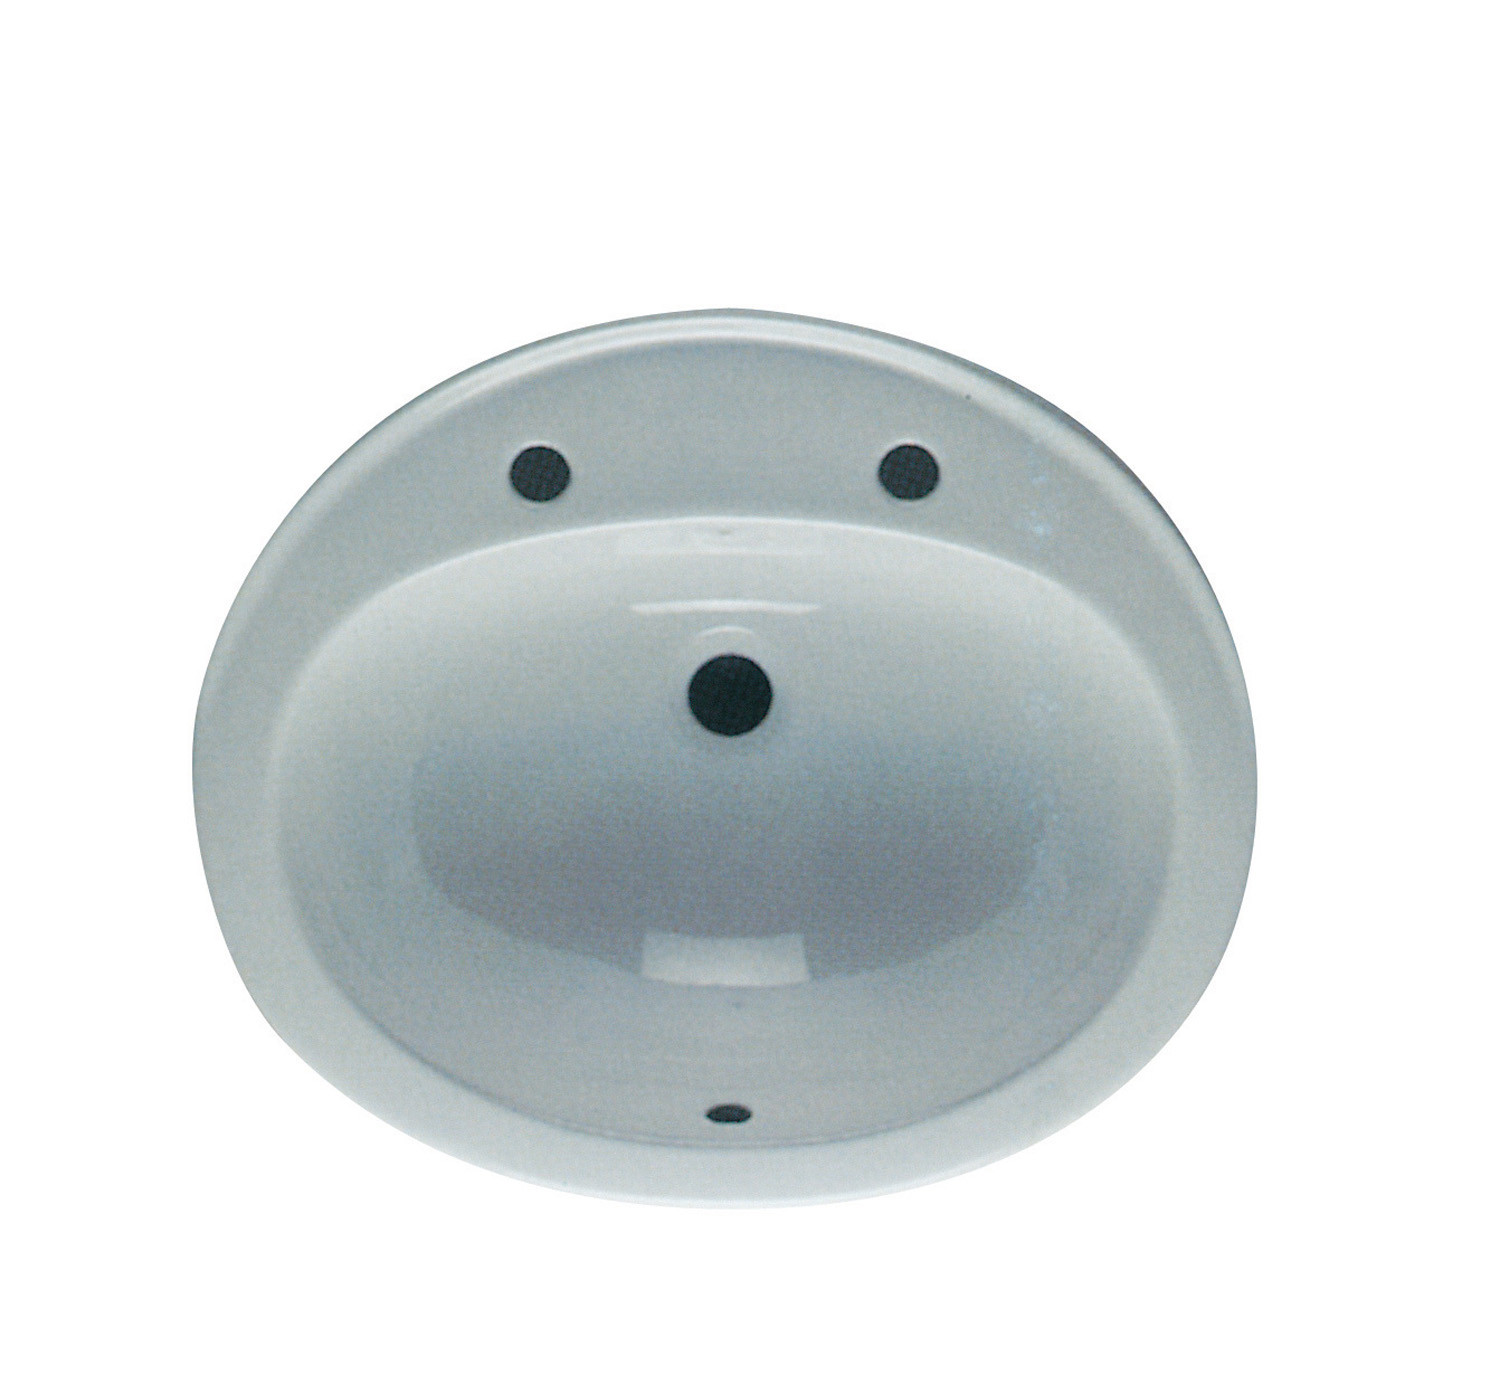 Jessica 530mm Over-the-Counter Basin - 2 Tap Holes